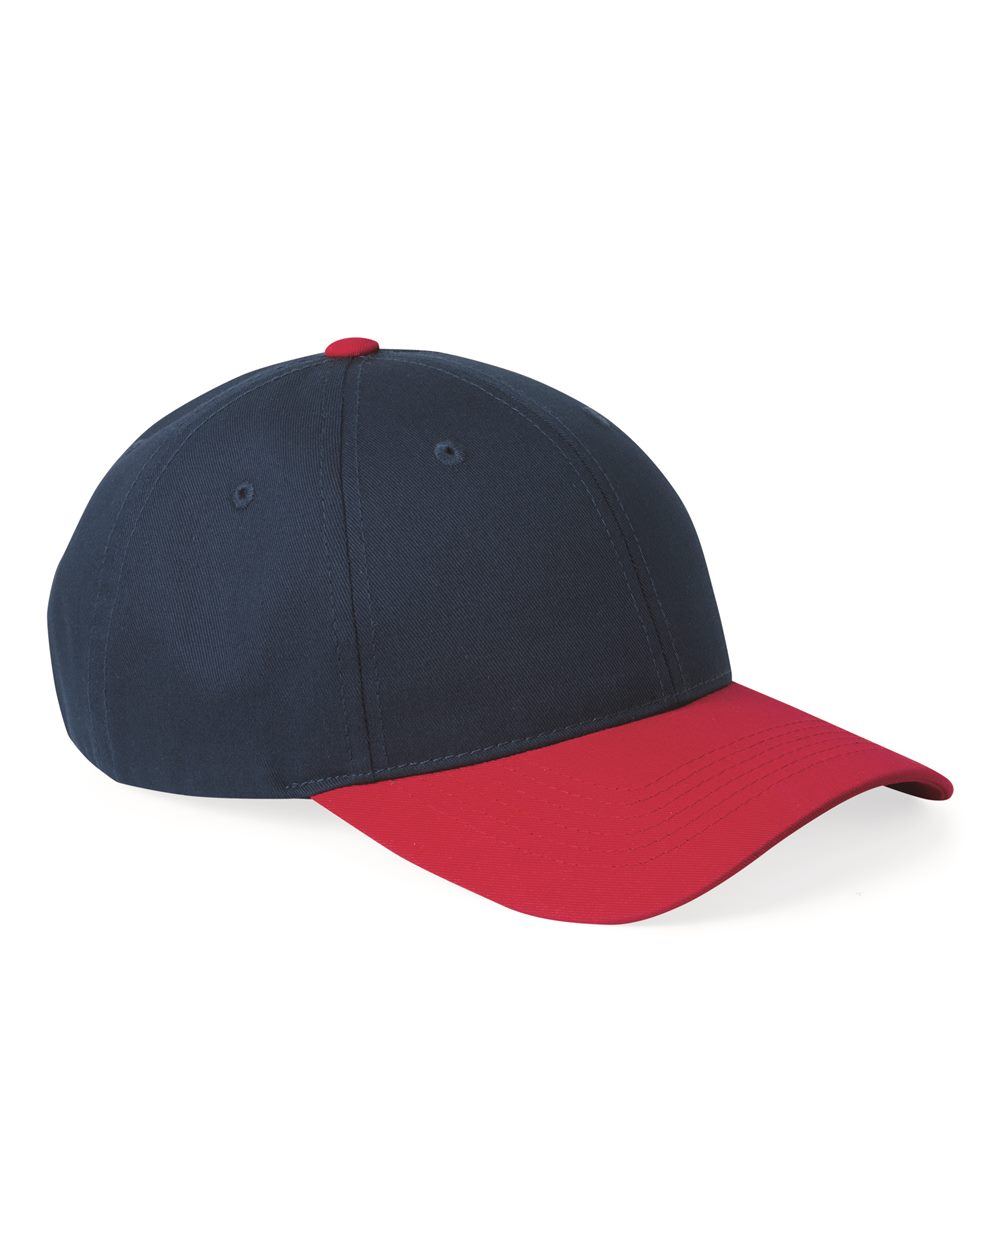 Team Sportsman 2260Y - Small Fit Cotton Twill Cap